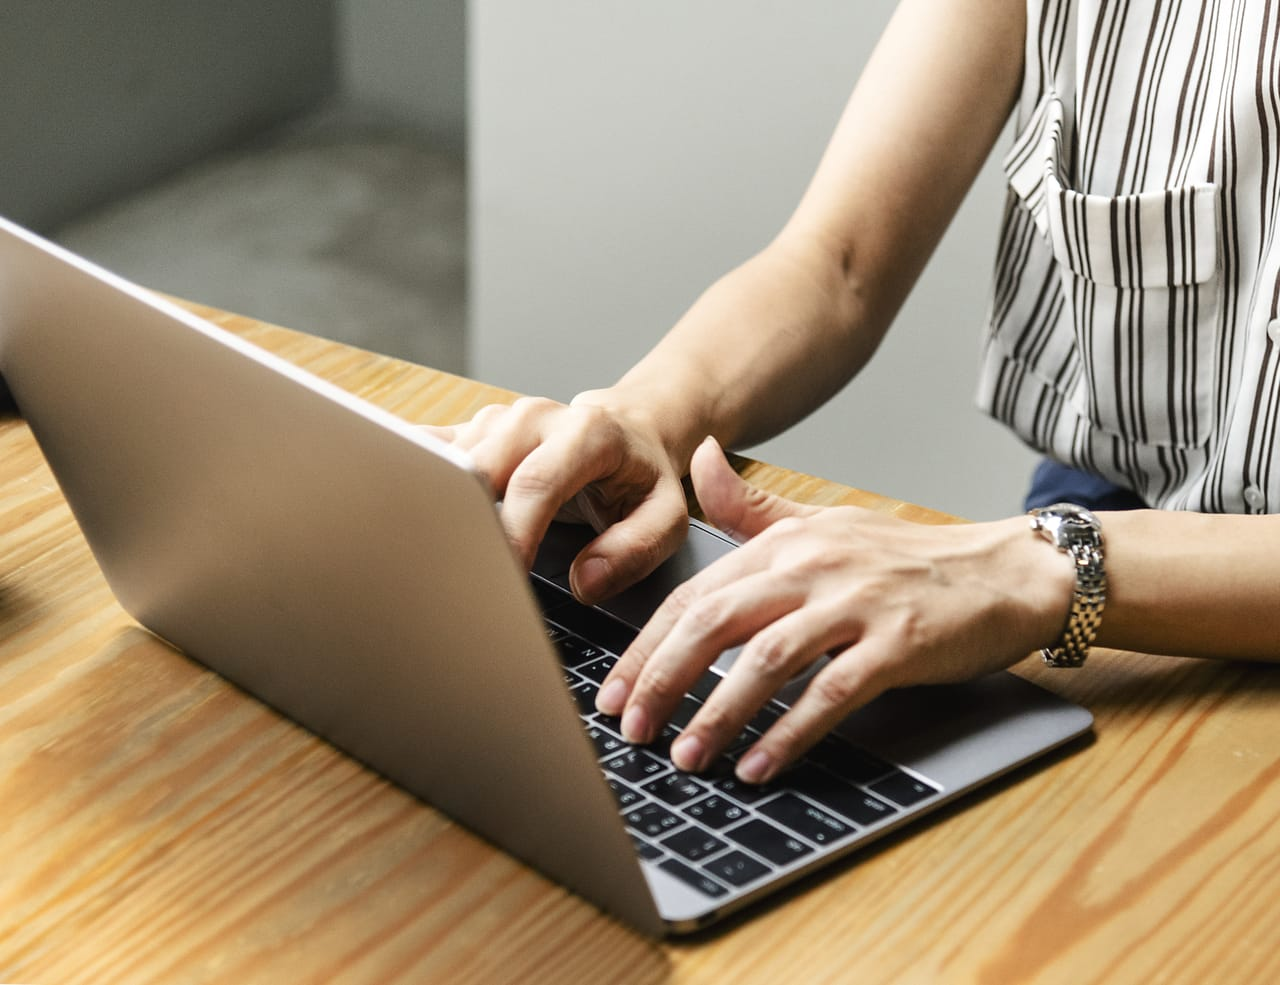 woman-typing-on-laptop-computer